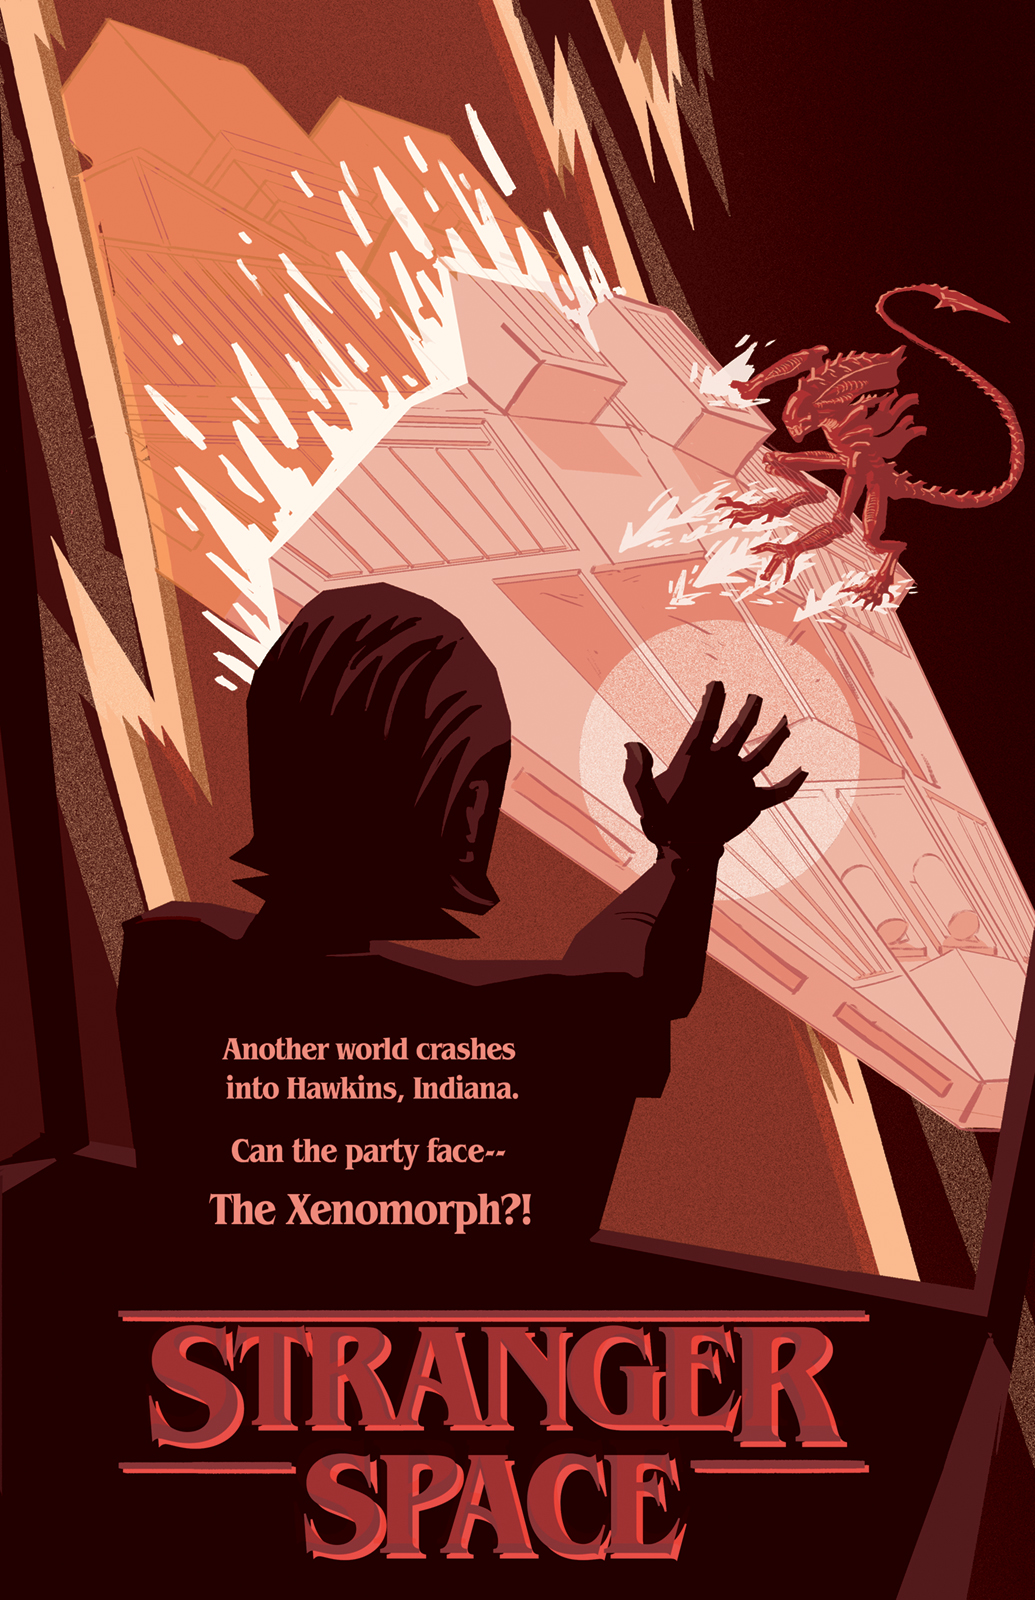 Digital poster design showing El from Stranger Things fighting a Xenomorph as the Nostromo pod crashes through the Gate.